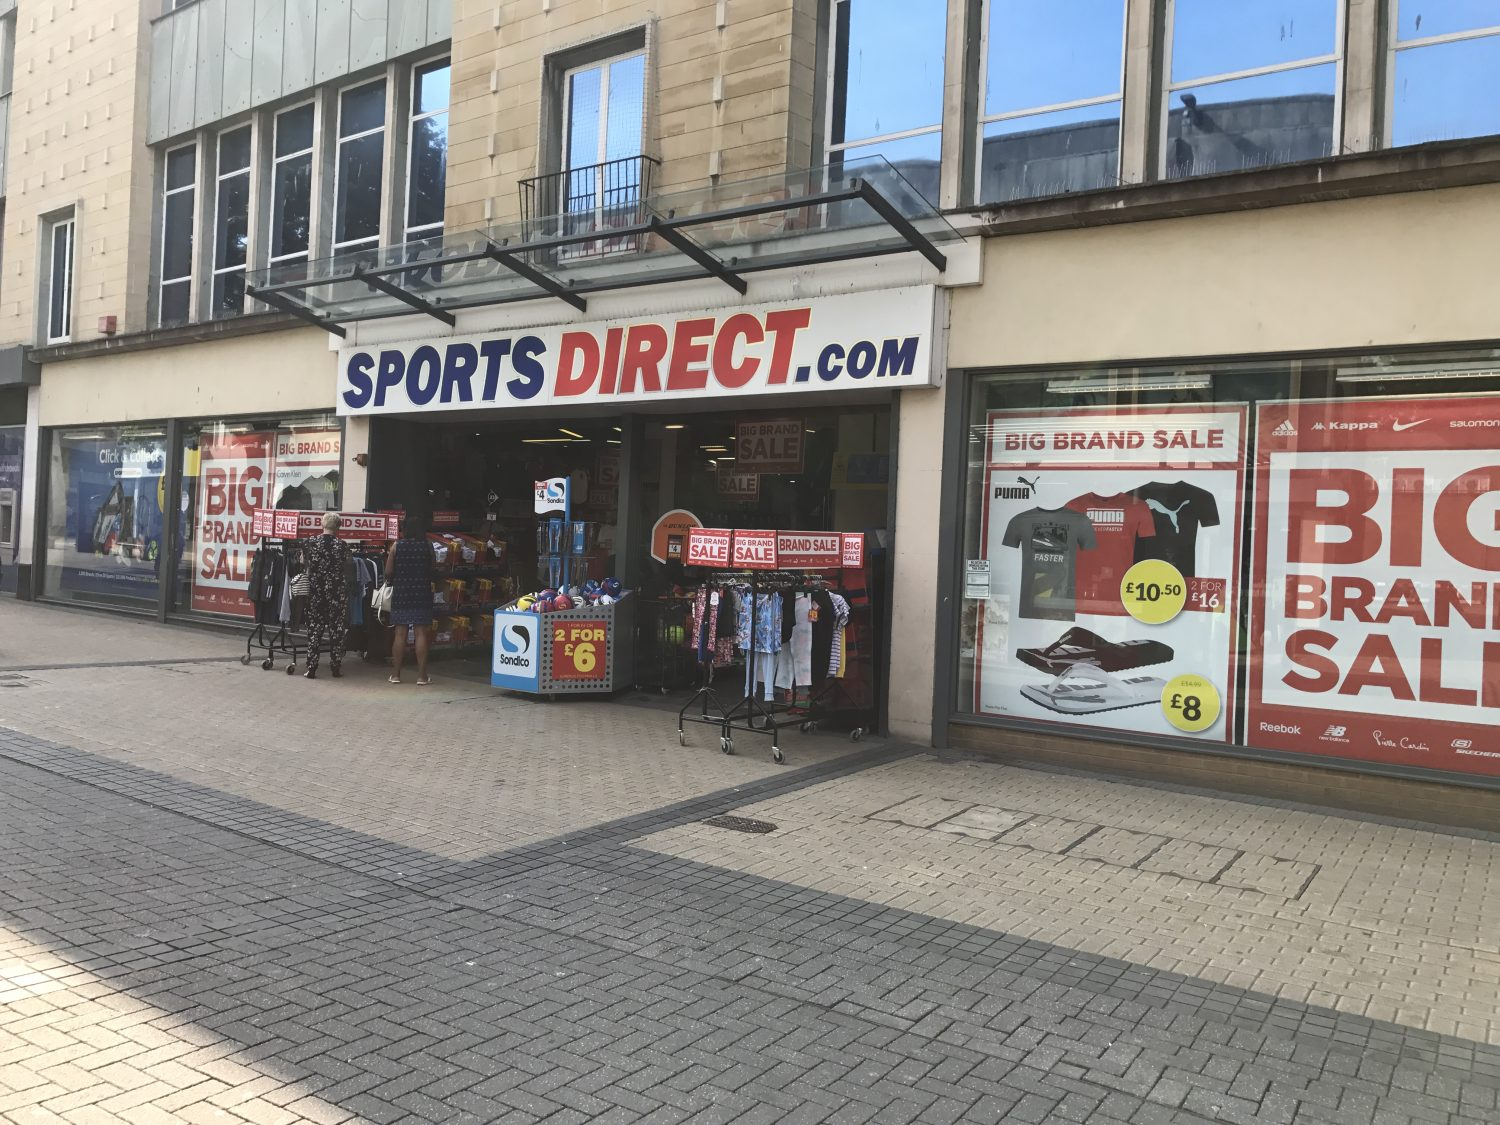 Sports Direct Erfahrungen